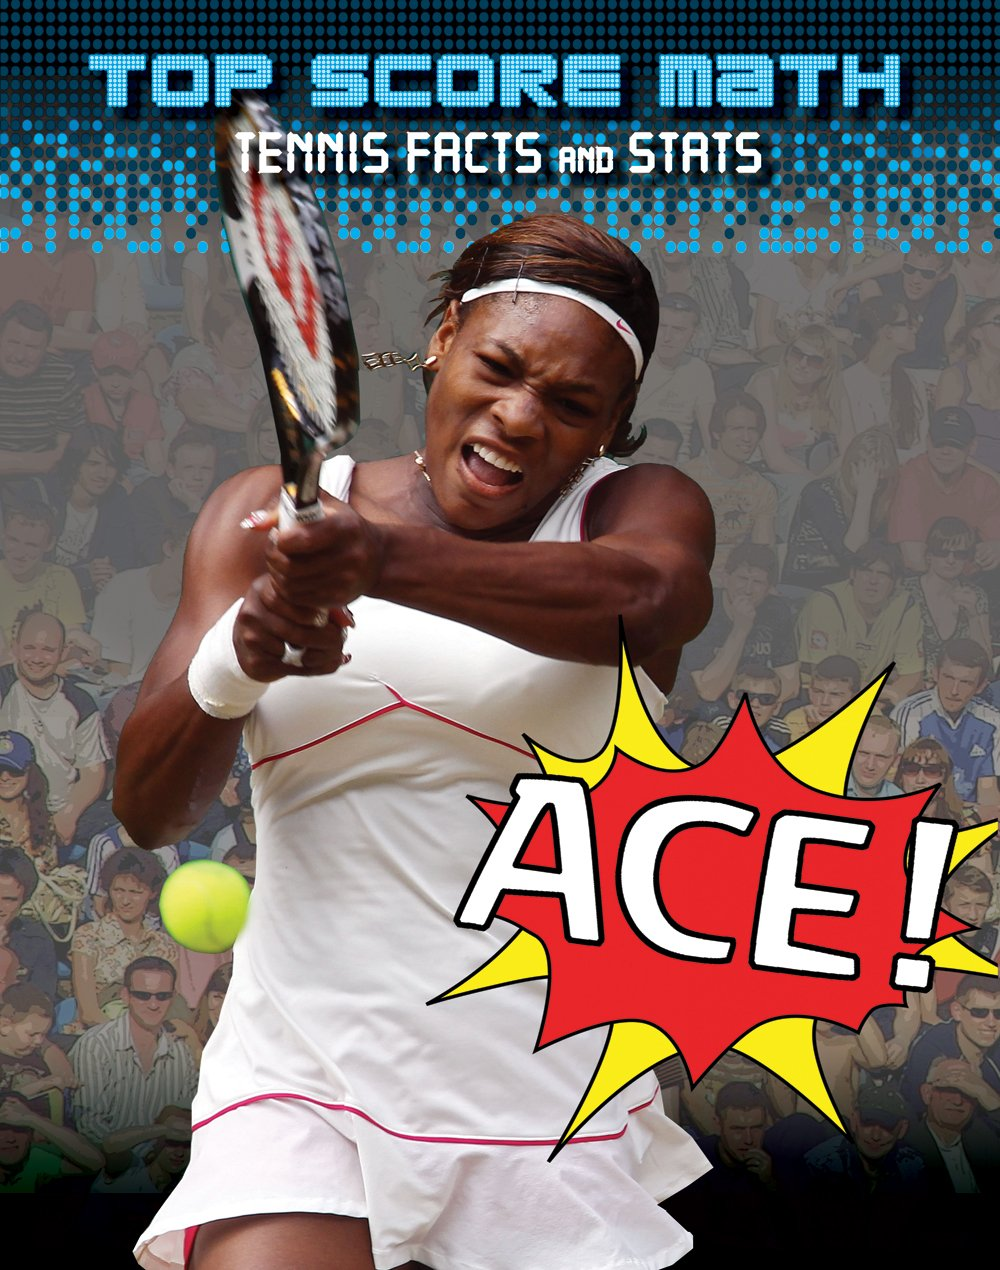 Ace! Tennis Facts and Stats (Top Score Math)